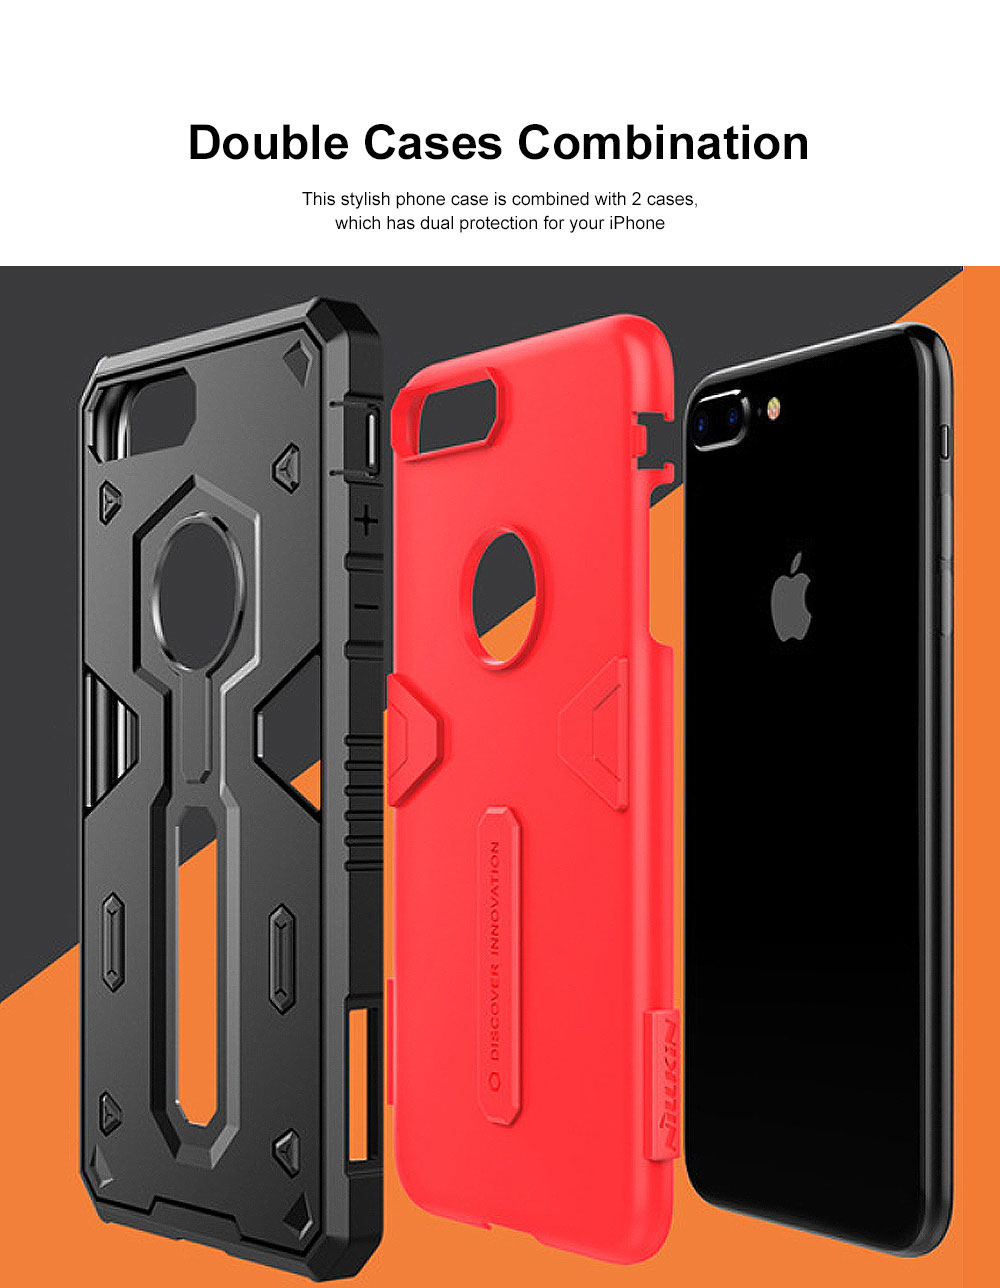 Armour Shape Cool Phone Back Cover Shell Case Color Mixture Stylish Holder TPU Built-In for iPhone 8 Plus PC Protective Case 2